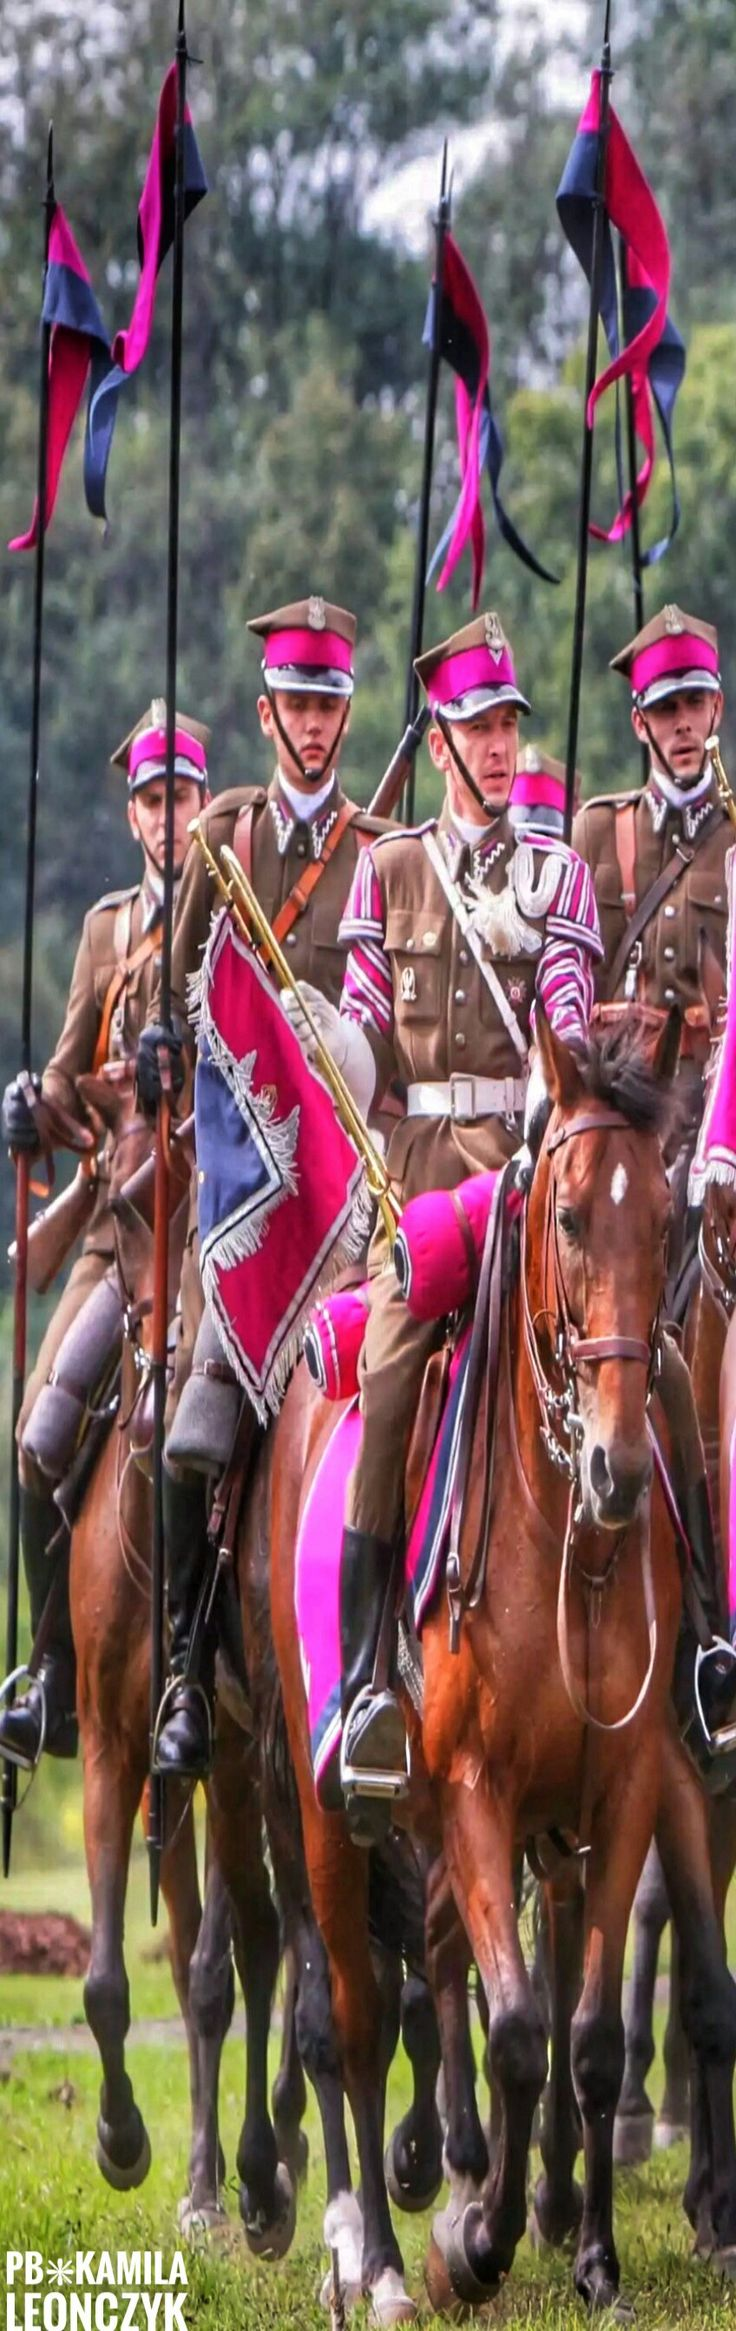 Cavalry Squadron of Polish Armed Forces - The Polish cavalry can trace its origins back to the days of medieval mounted knights. Poland is mostly a country of flatlands and fields and mounted forces operate well in this environment. The knights and heavy #horse #cavalry gradually evolved into many different types of specialised mounted military formations, some of which heavily influenced western warfare and military science